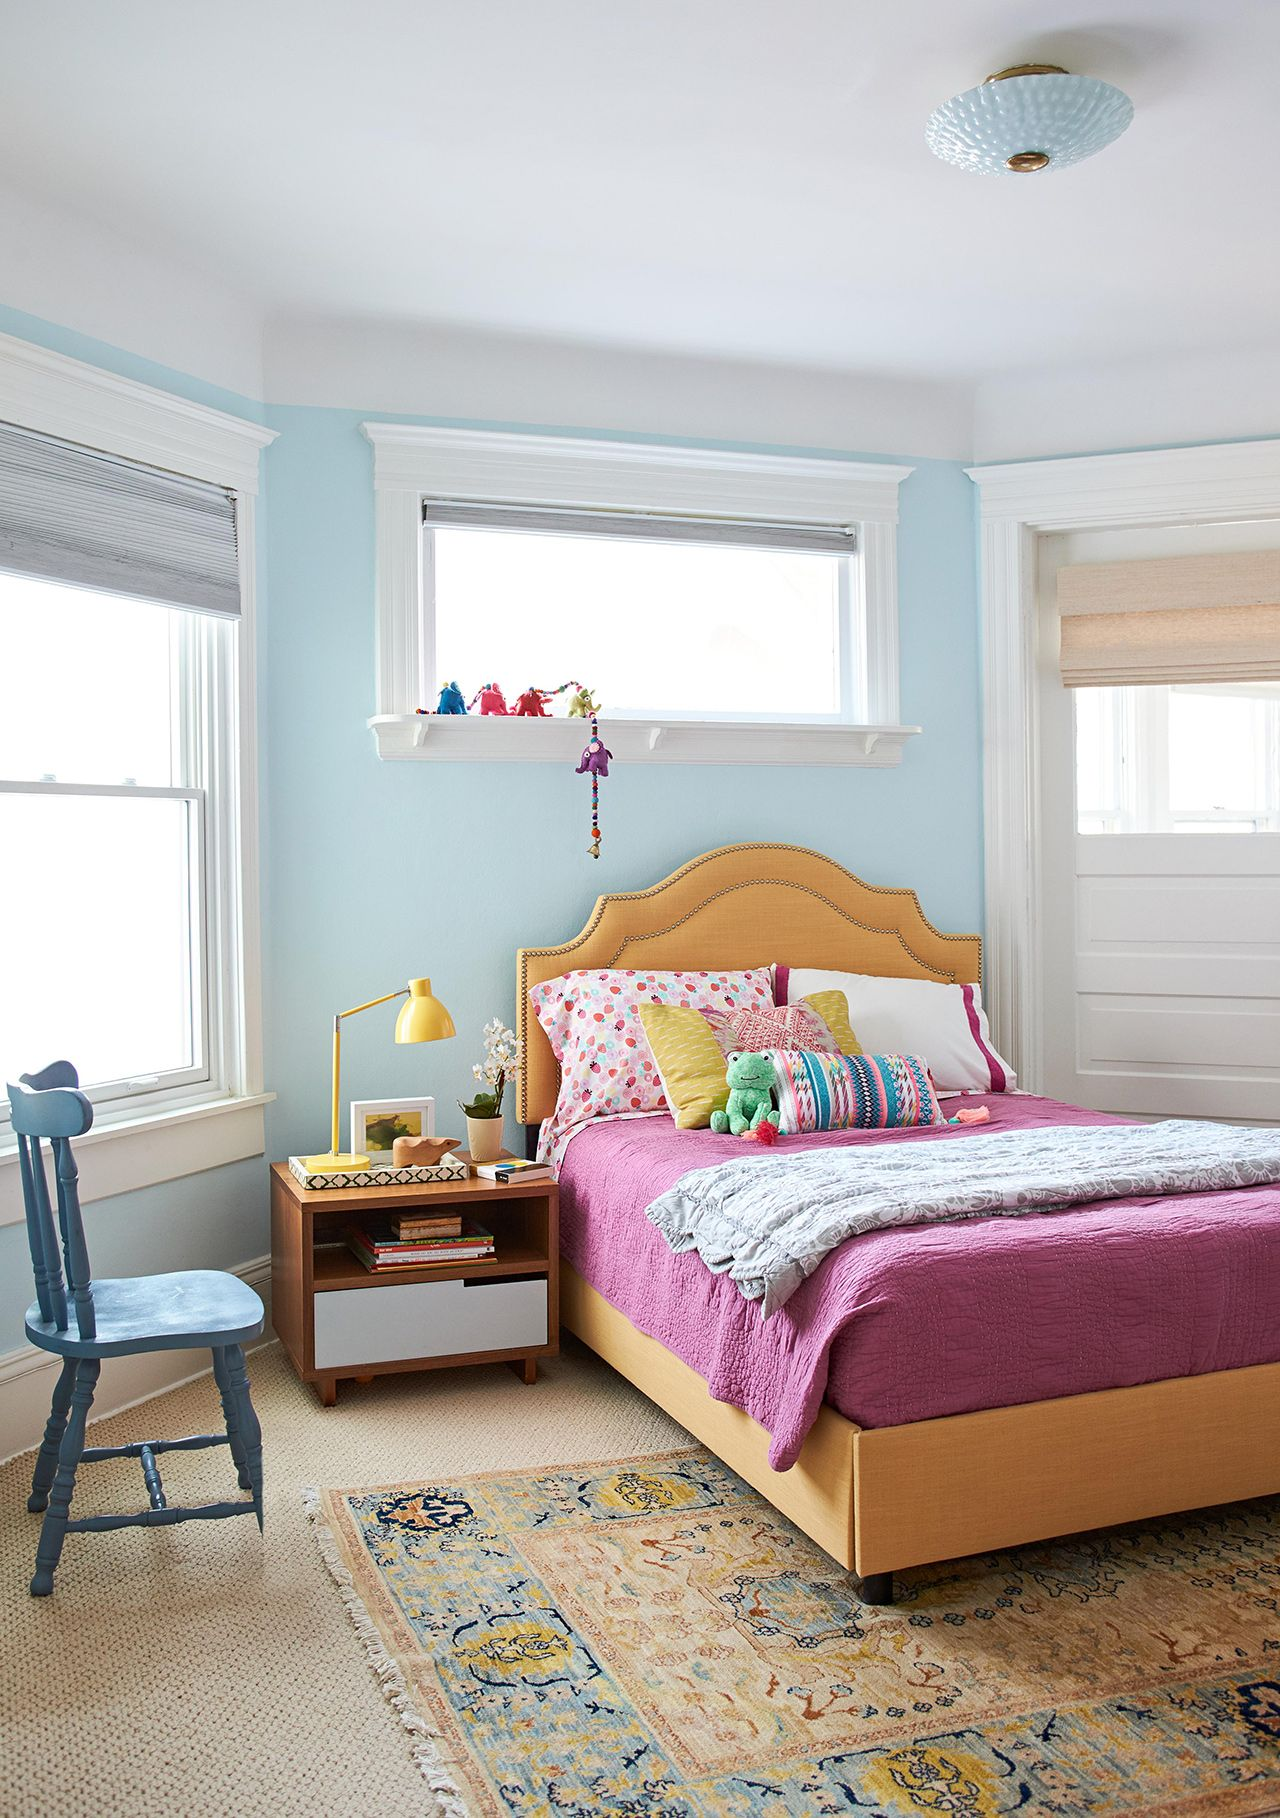 6 Tips For Creating A Room Your Kids Will Grow Into And Love Bedroom Makeover Before And After Furniture Room Interior